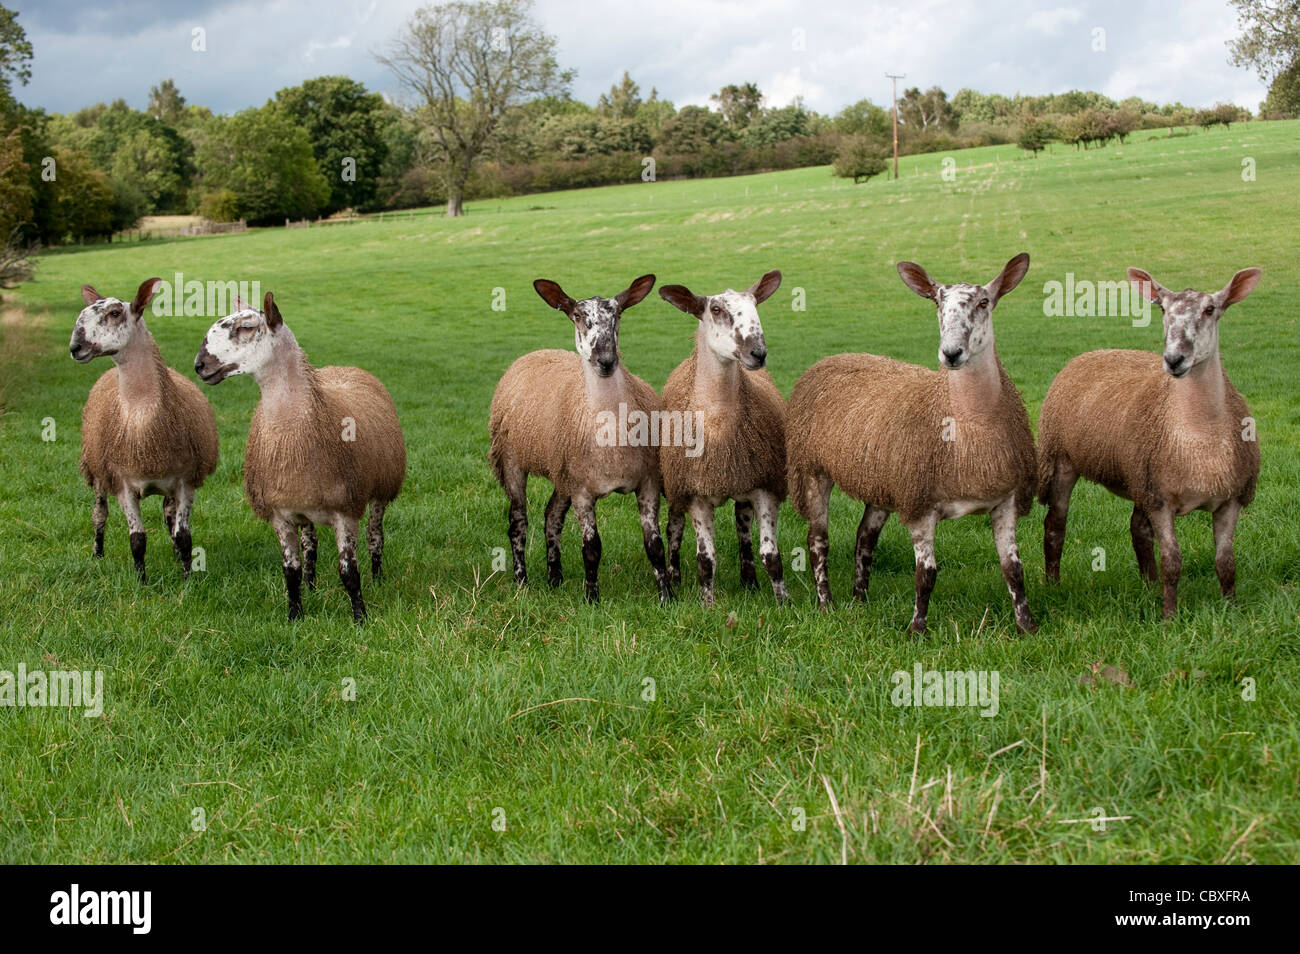 Bluefaced Leicester gimmer lambs in pasture all bred by embyro transplant. - Stock Image